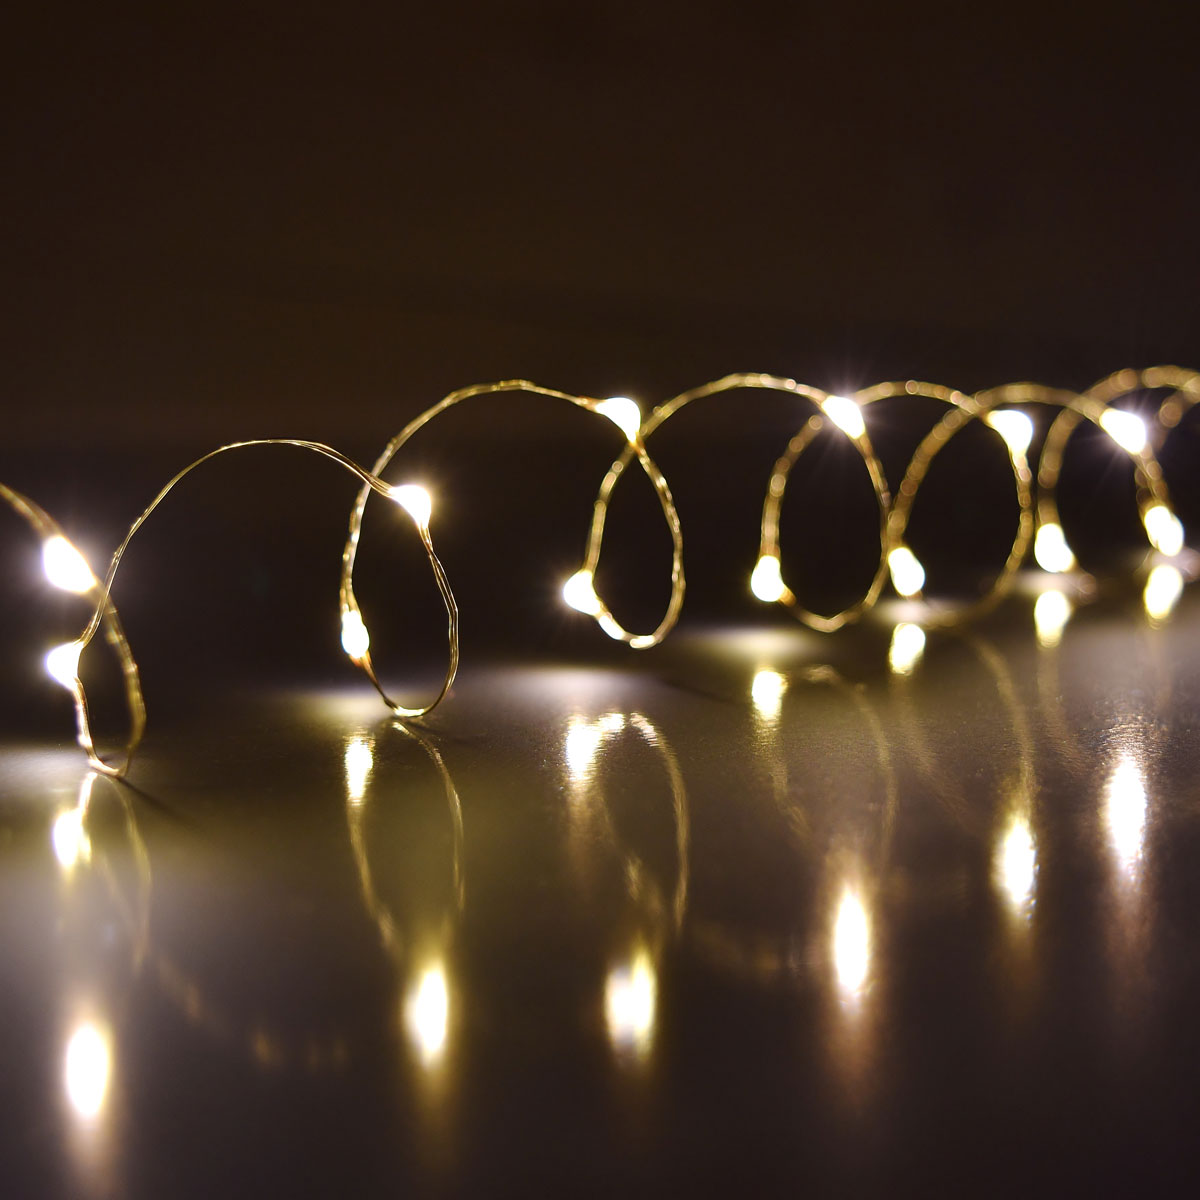 Ultra Thin Led Battery Operated String Lights 60